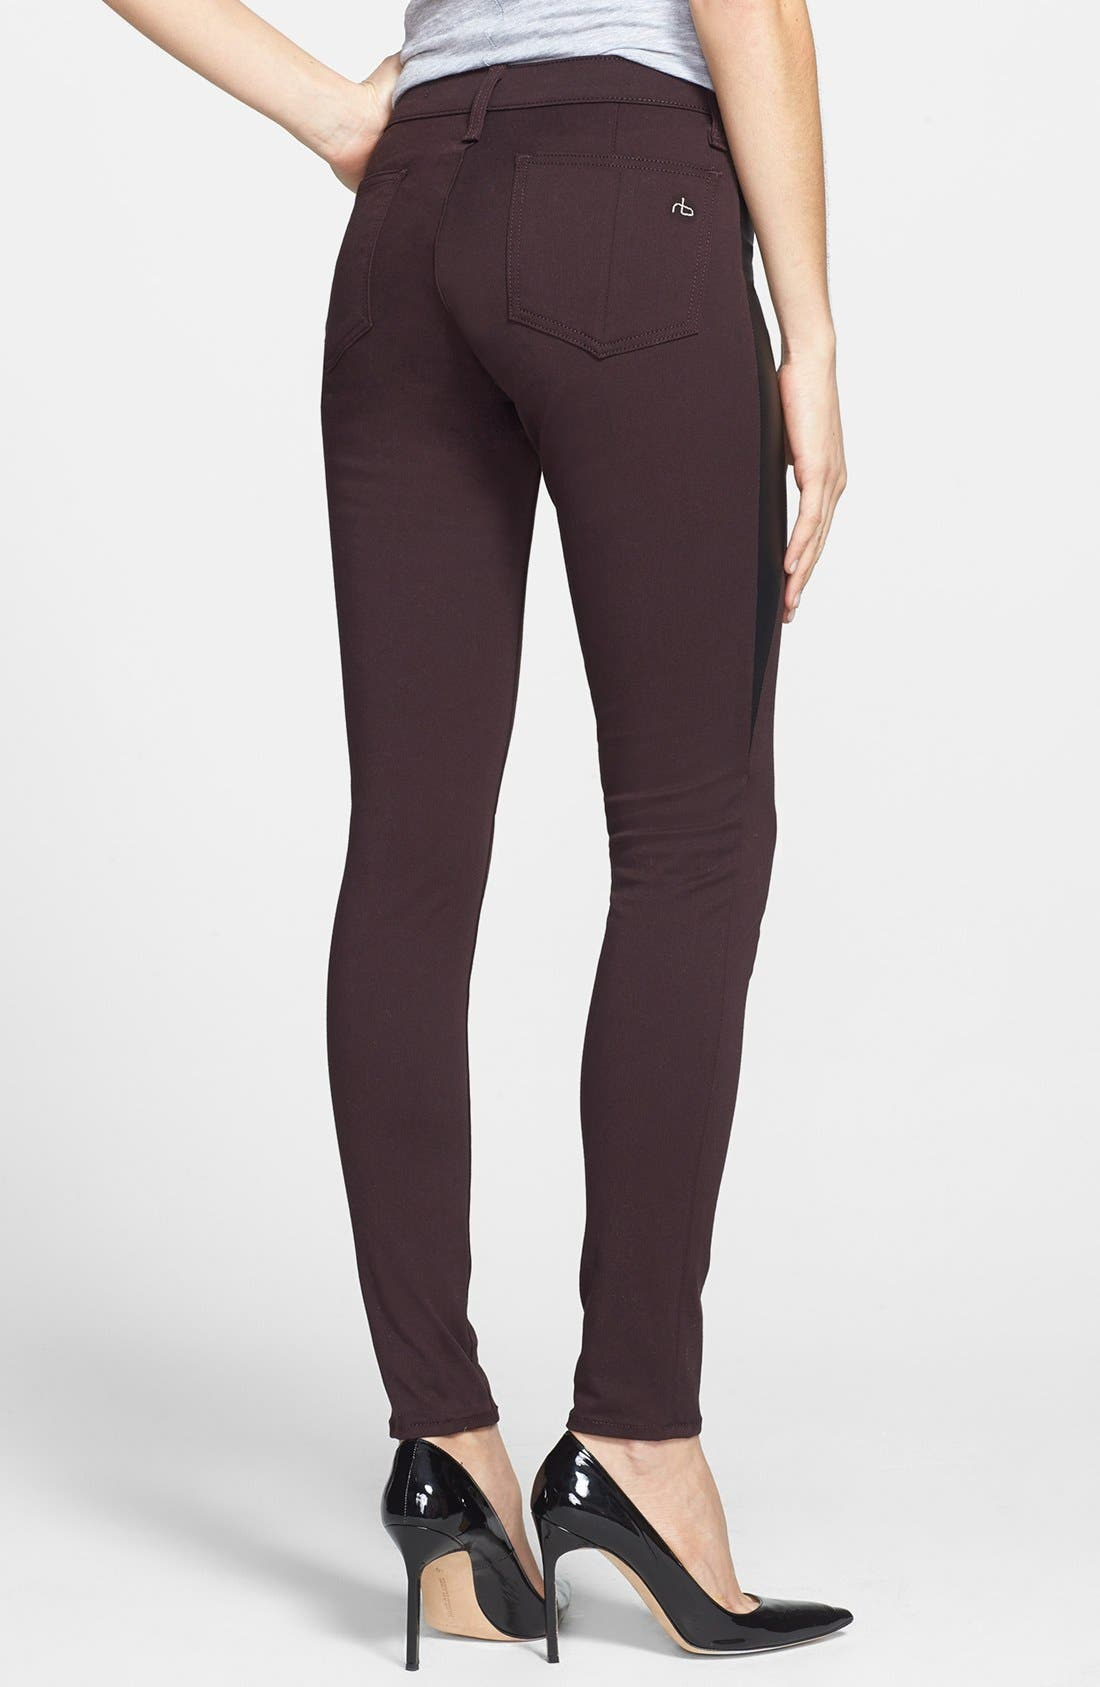 Alternate Image 2  - rag & bone/JEAN 'Pop' Leather Inset Skinny Jeans (Wine)